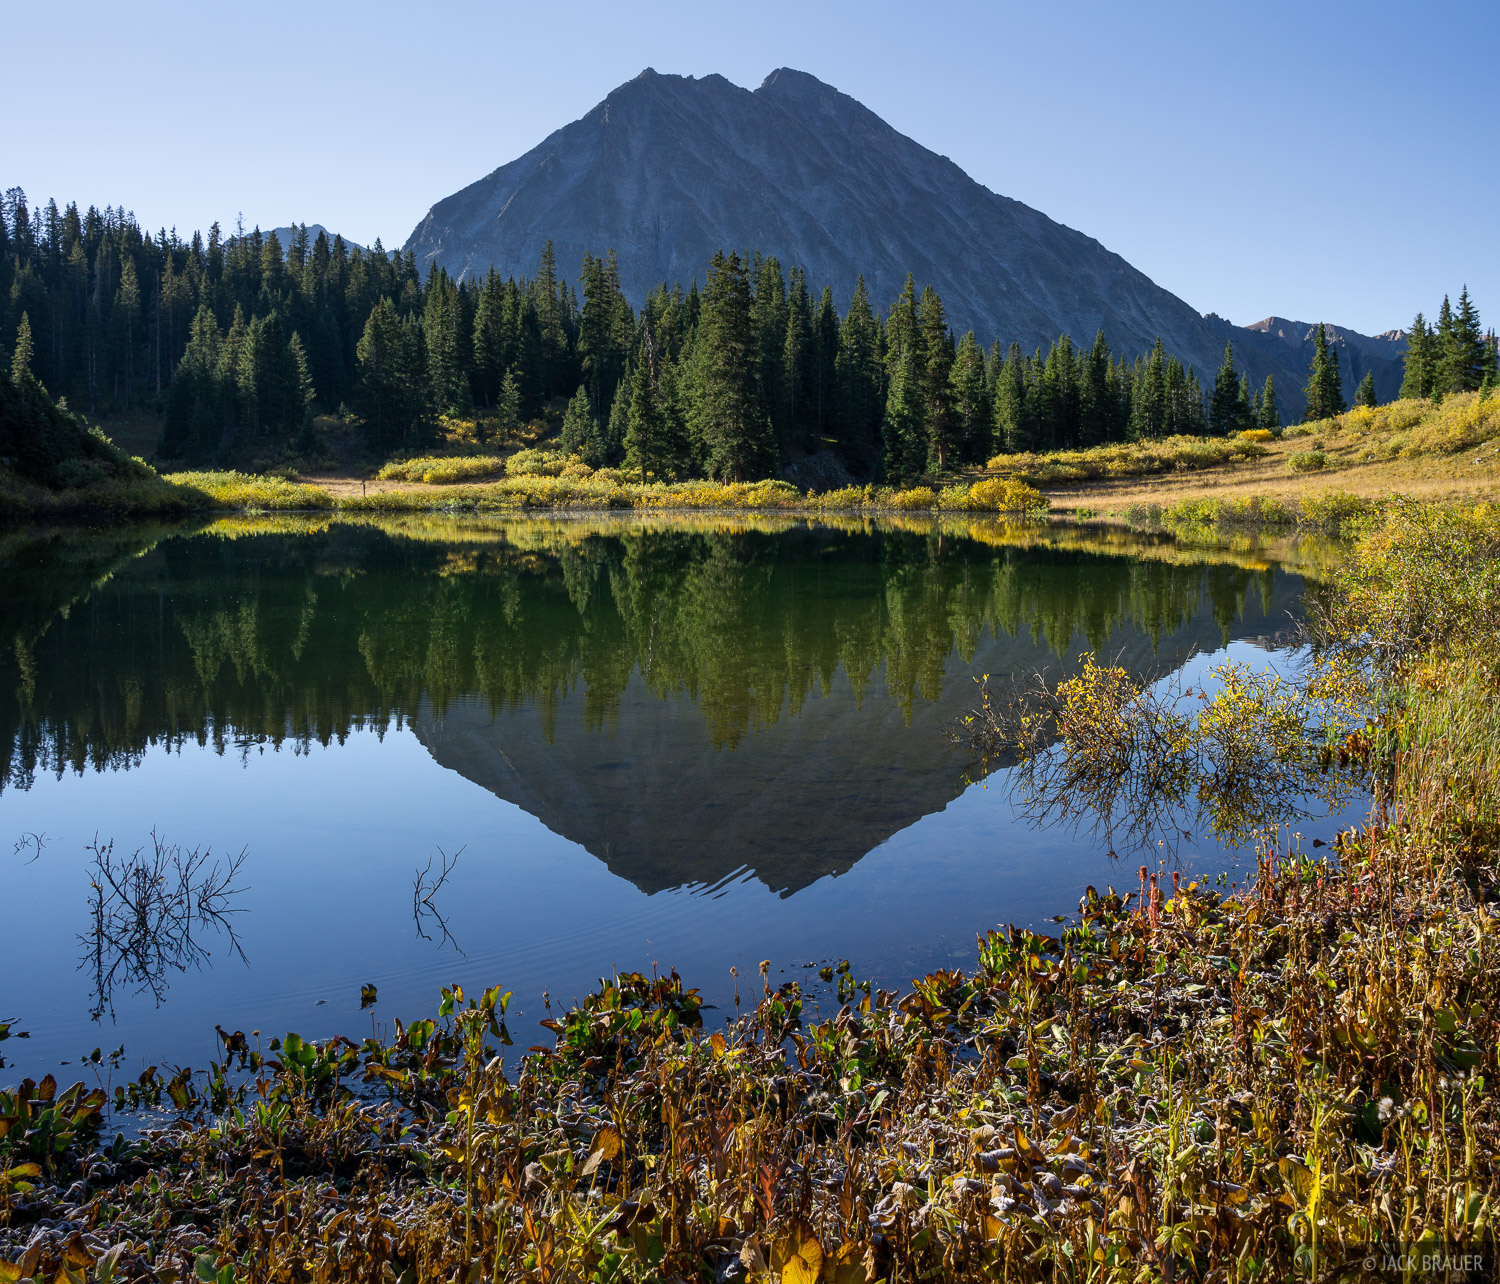 Colorado, Copper Lake, Elk Mountains, Maroon Bells-Snowmass Wilderness, photo